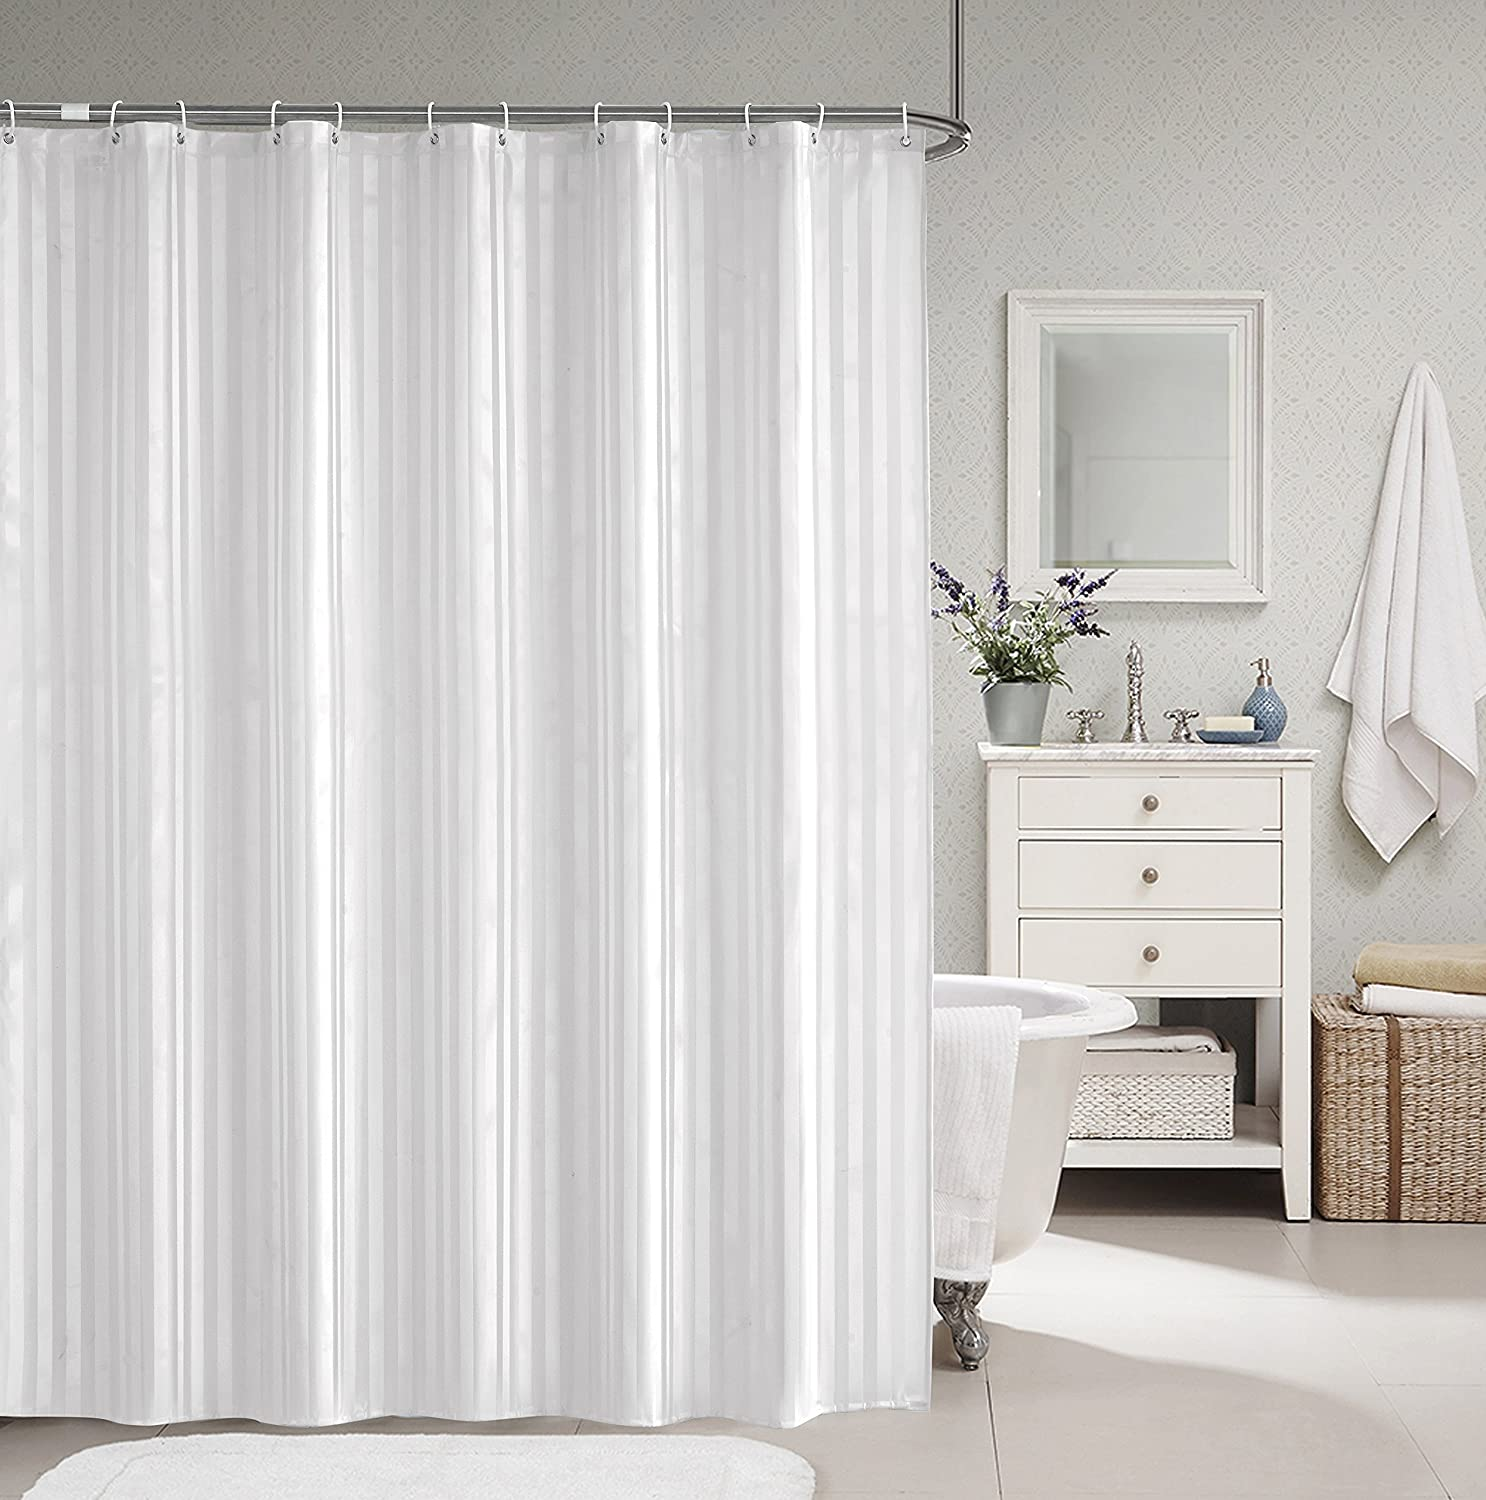 jcpenney small bathroom window curtains. Black Bedroom Furniture Sets. Home Design Ideas